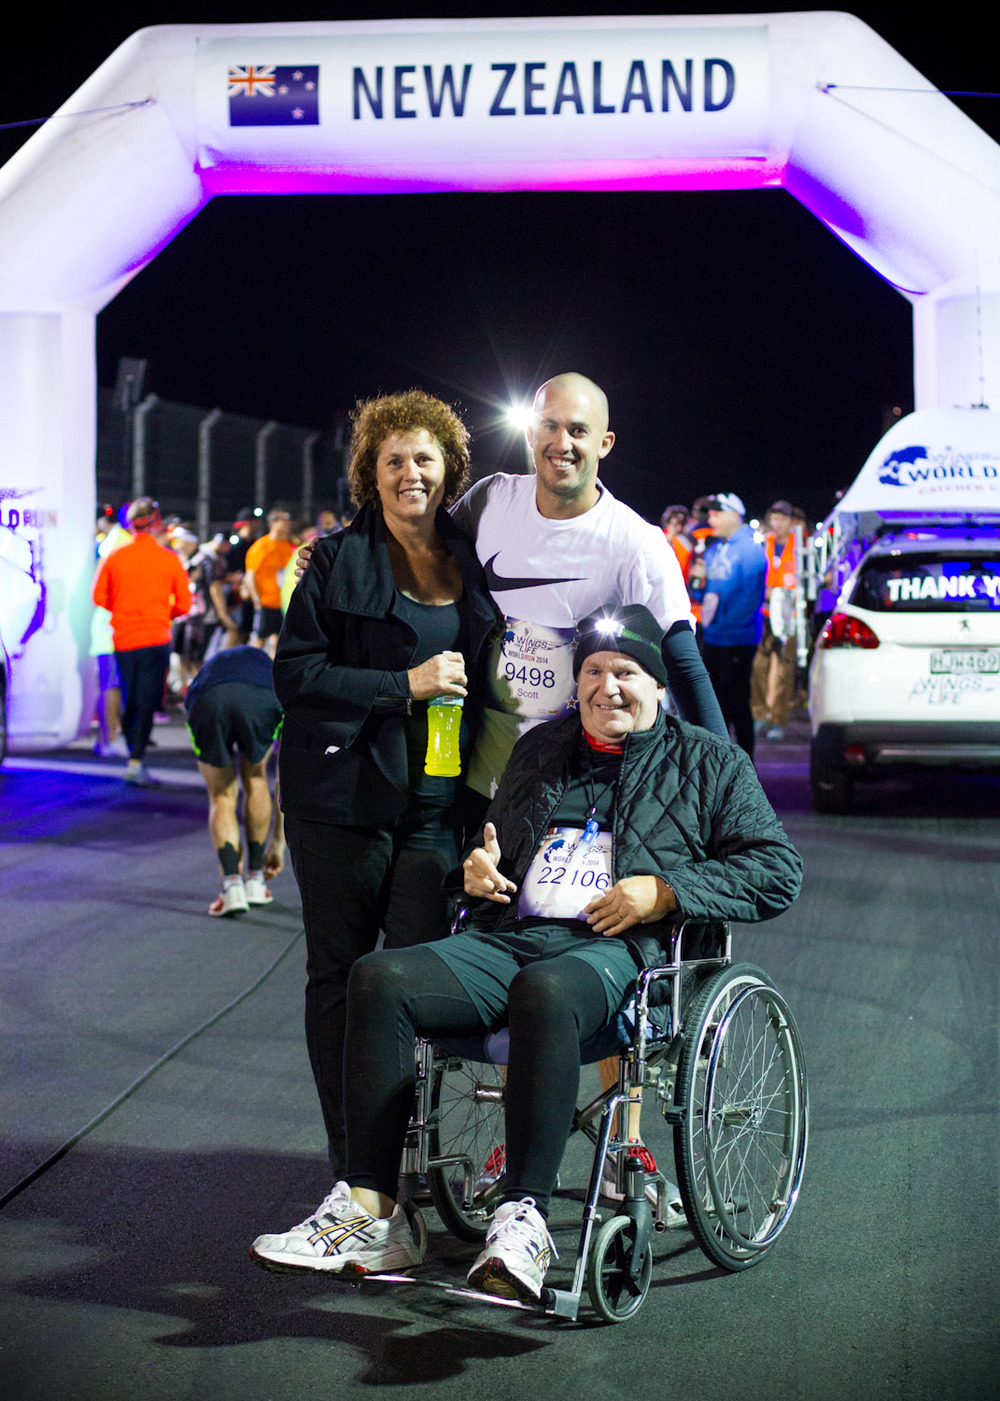 Lloyd participated in the Wings For Life charity run. The goal of the event was to fundraise for spinal cord research. He covered 3.7km on foot before being caught by the chase car. This is the furthest distance he has covered since his disability set in, in his early 20s.